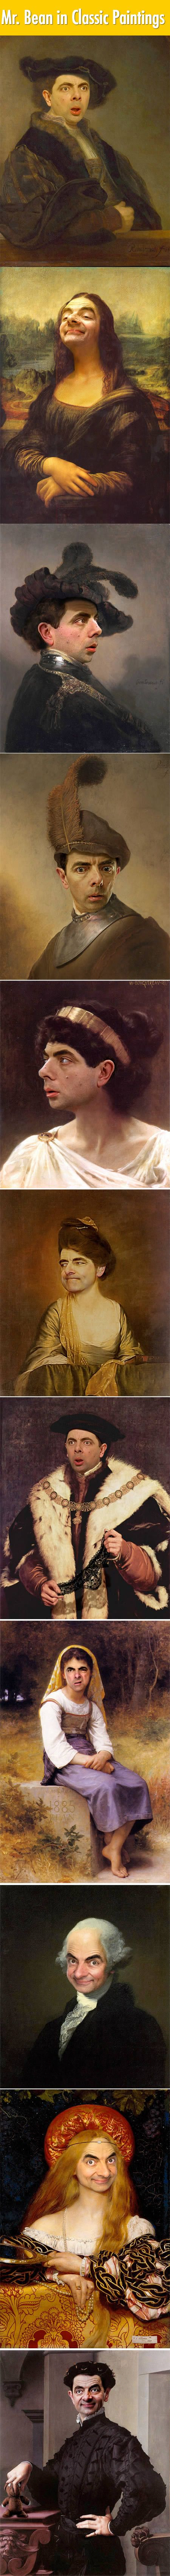 Mr.Bean In 11 Famous Classic Paintings. |LOL, Damn! Spread Laughter And Awesomeness!